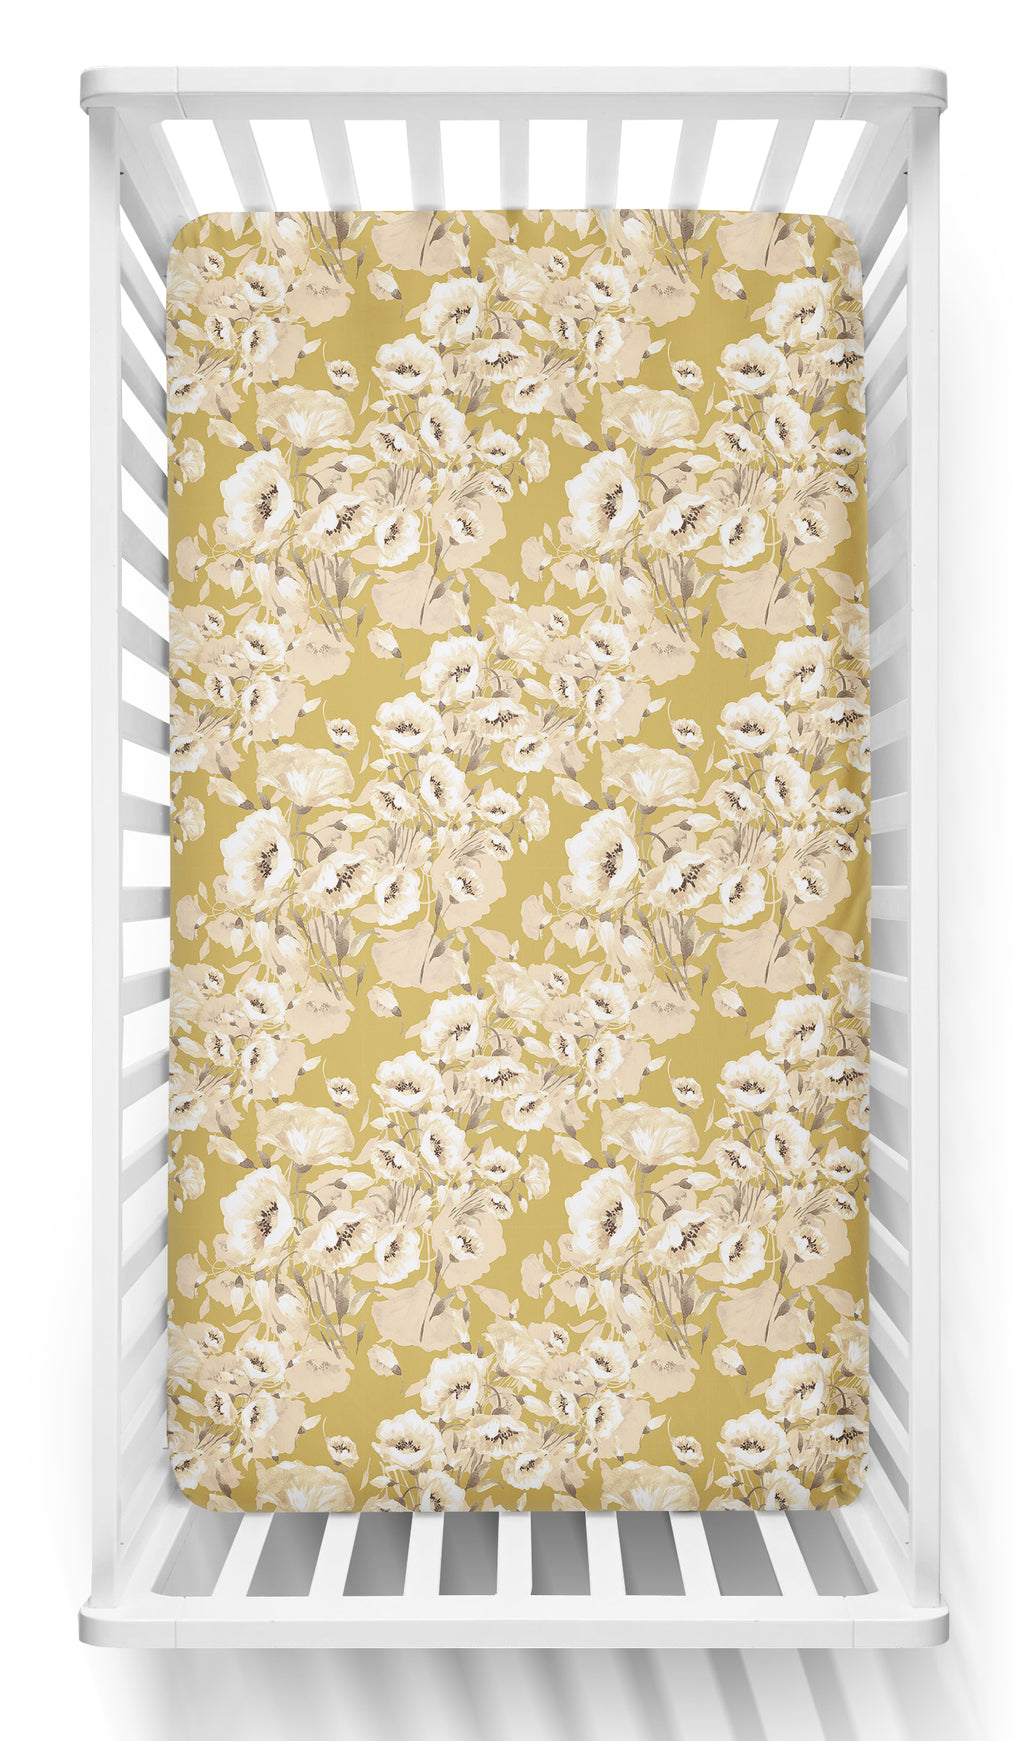 Golden Poppy Cot Sheet Fitted/Crib Sheet